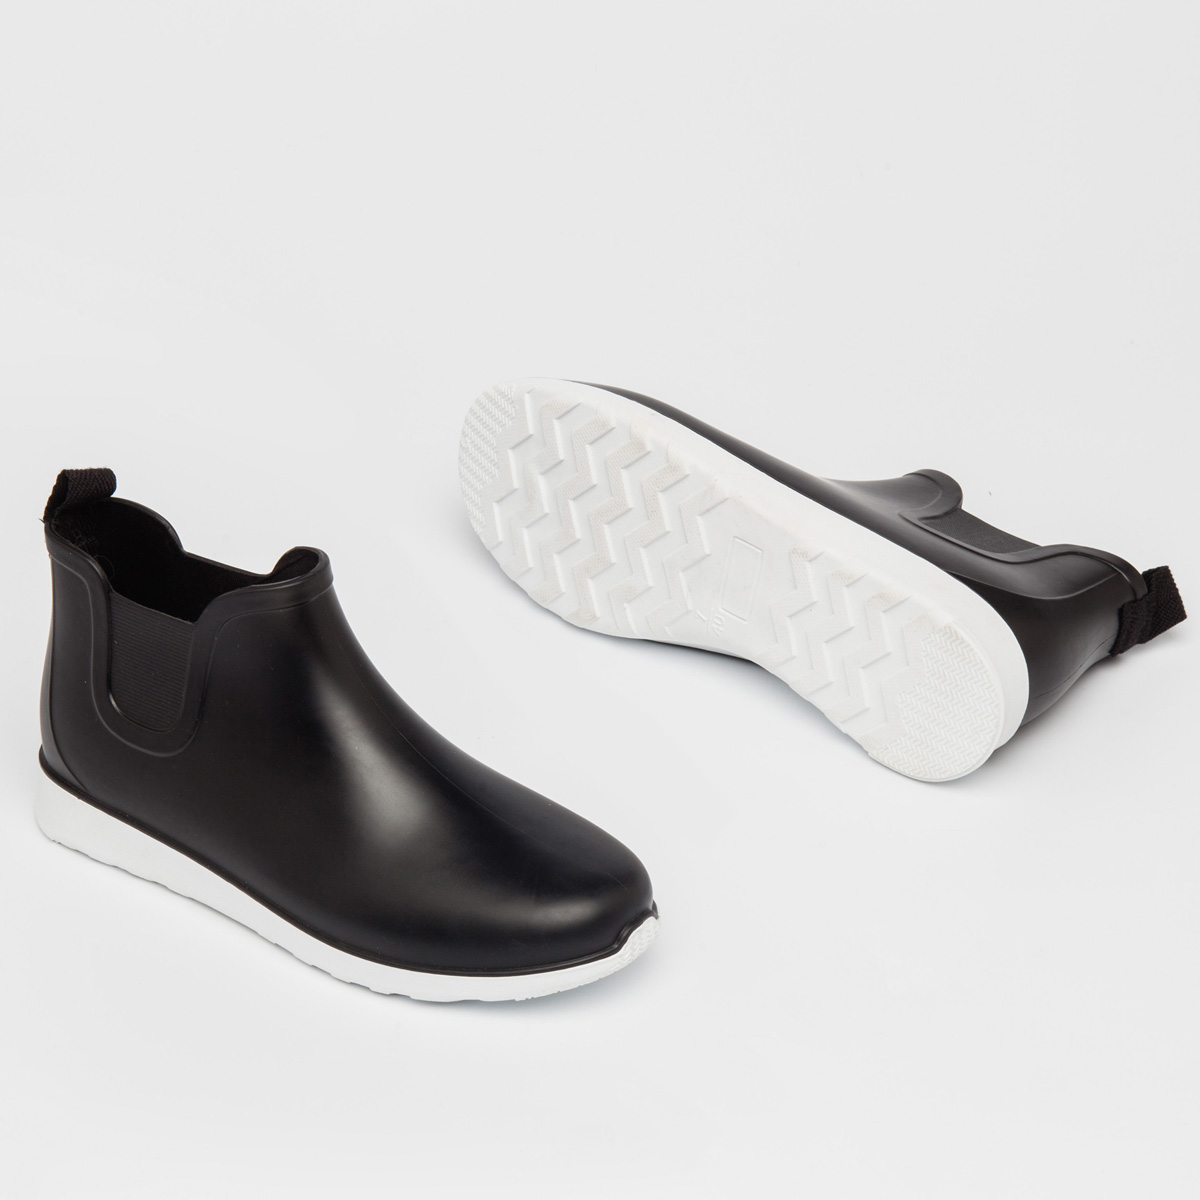 Spring and summer rain boots fishing boots kitchen water shoes shoes ...